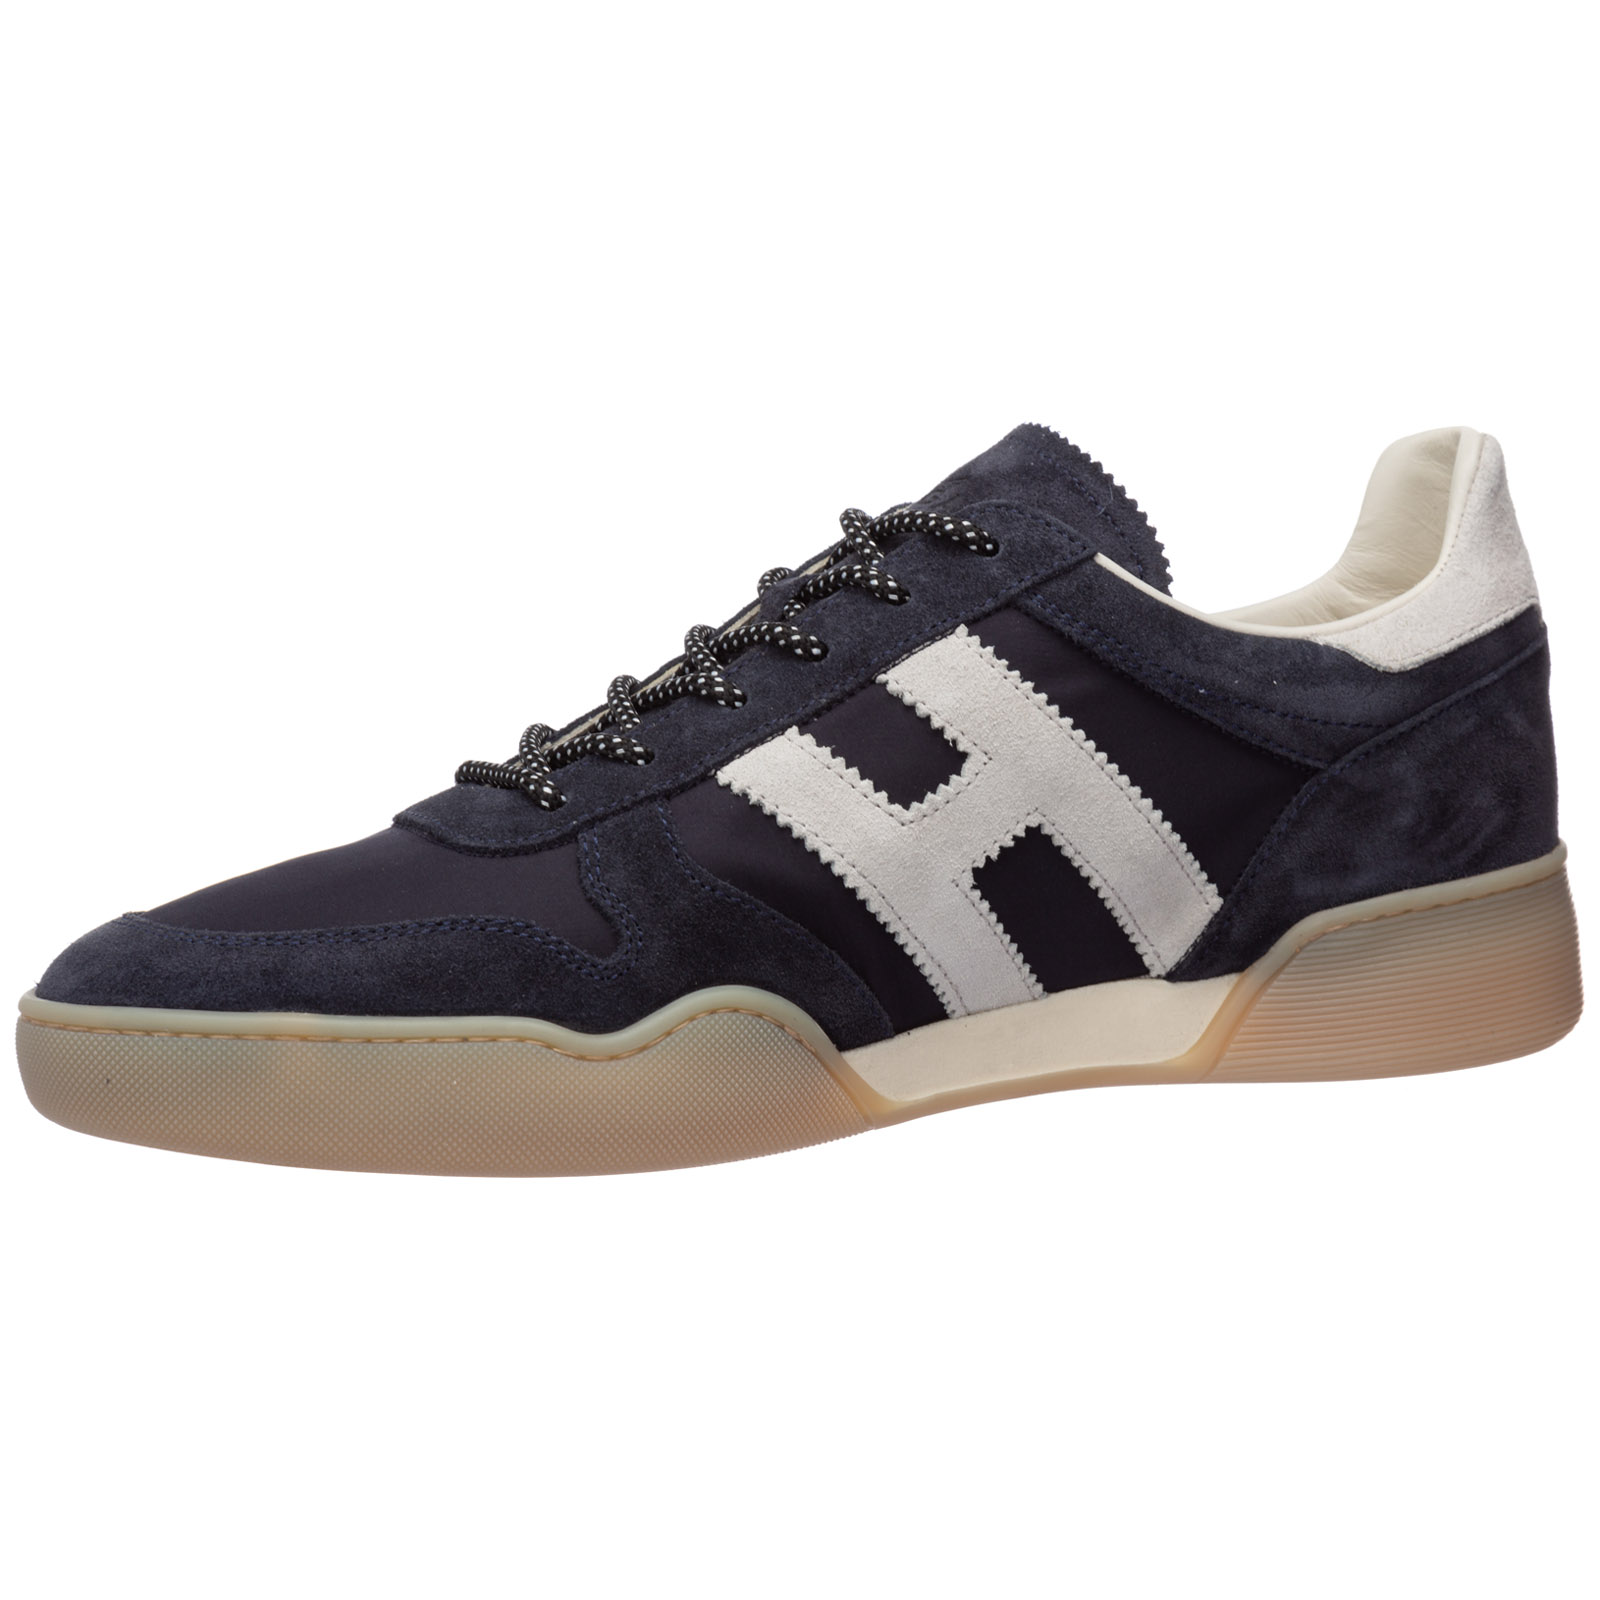 Men's shoes suede trainers sneakers h357